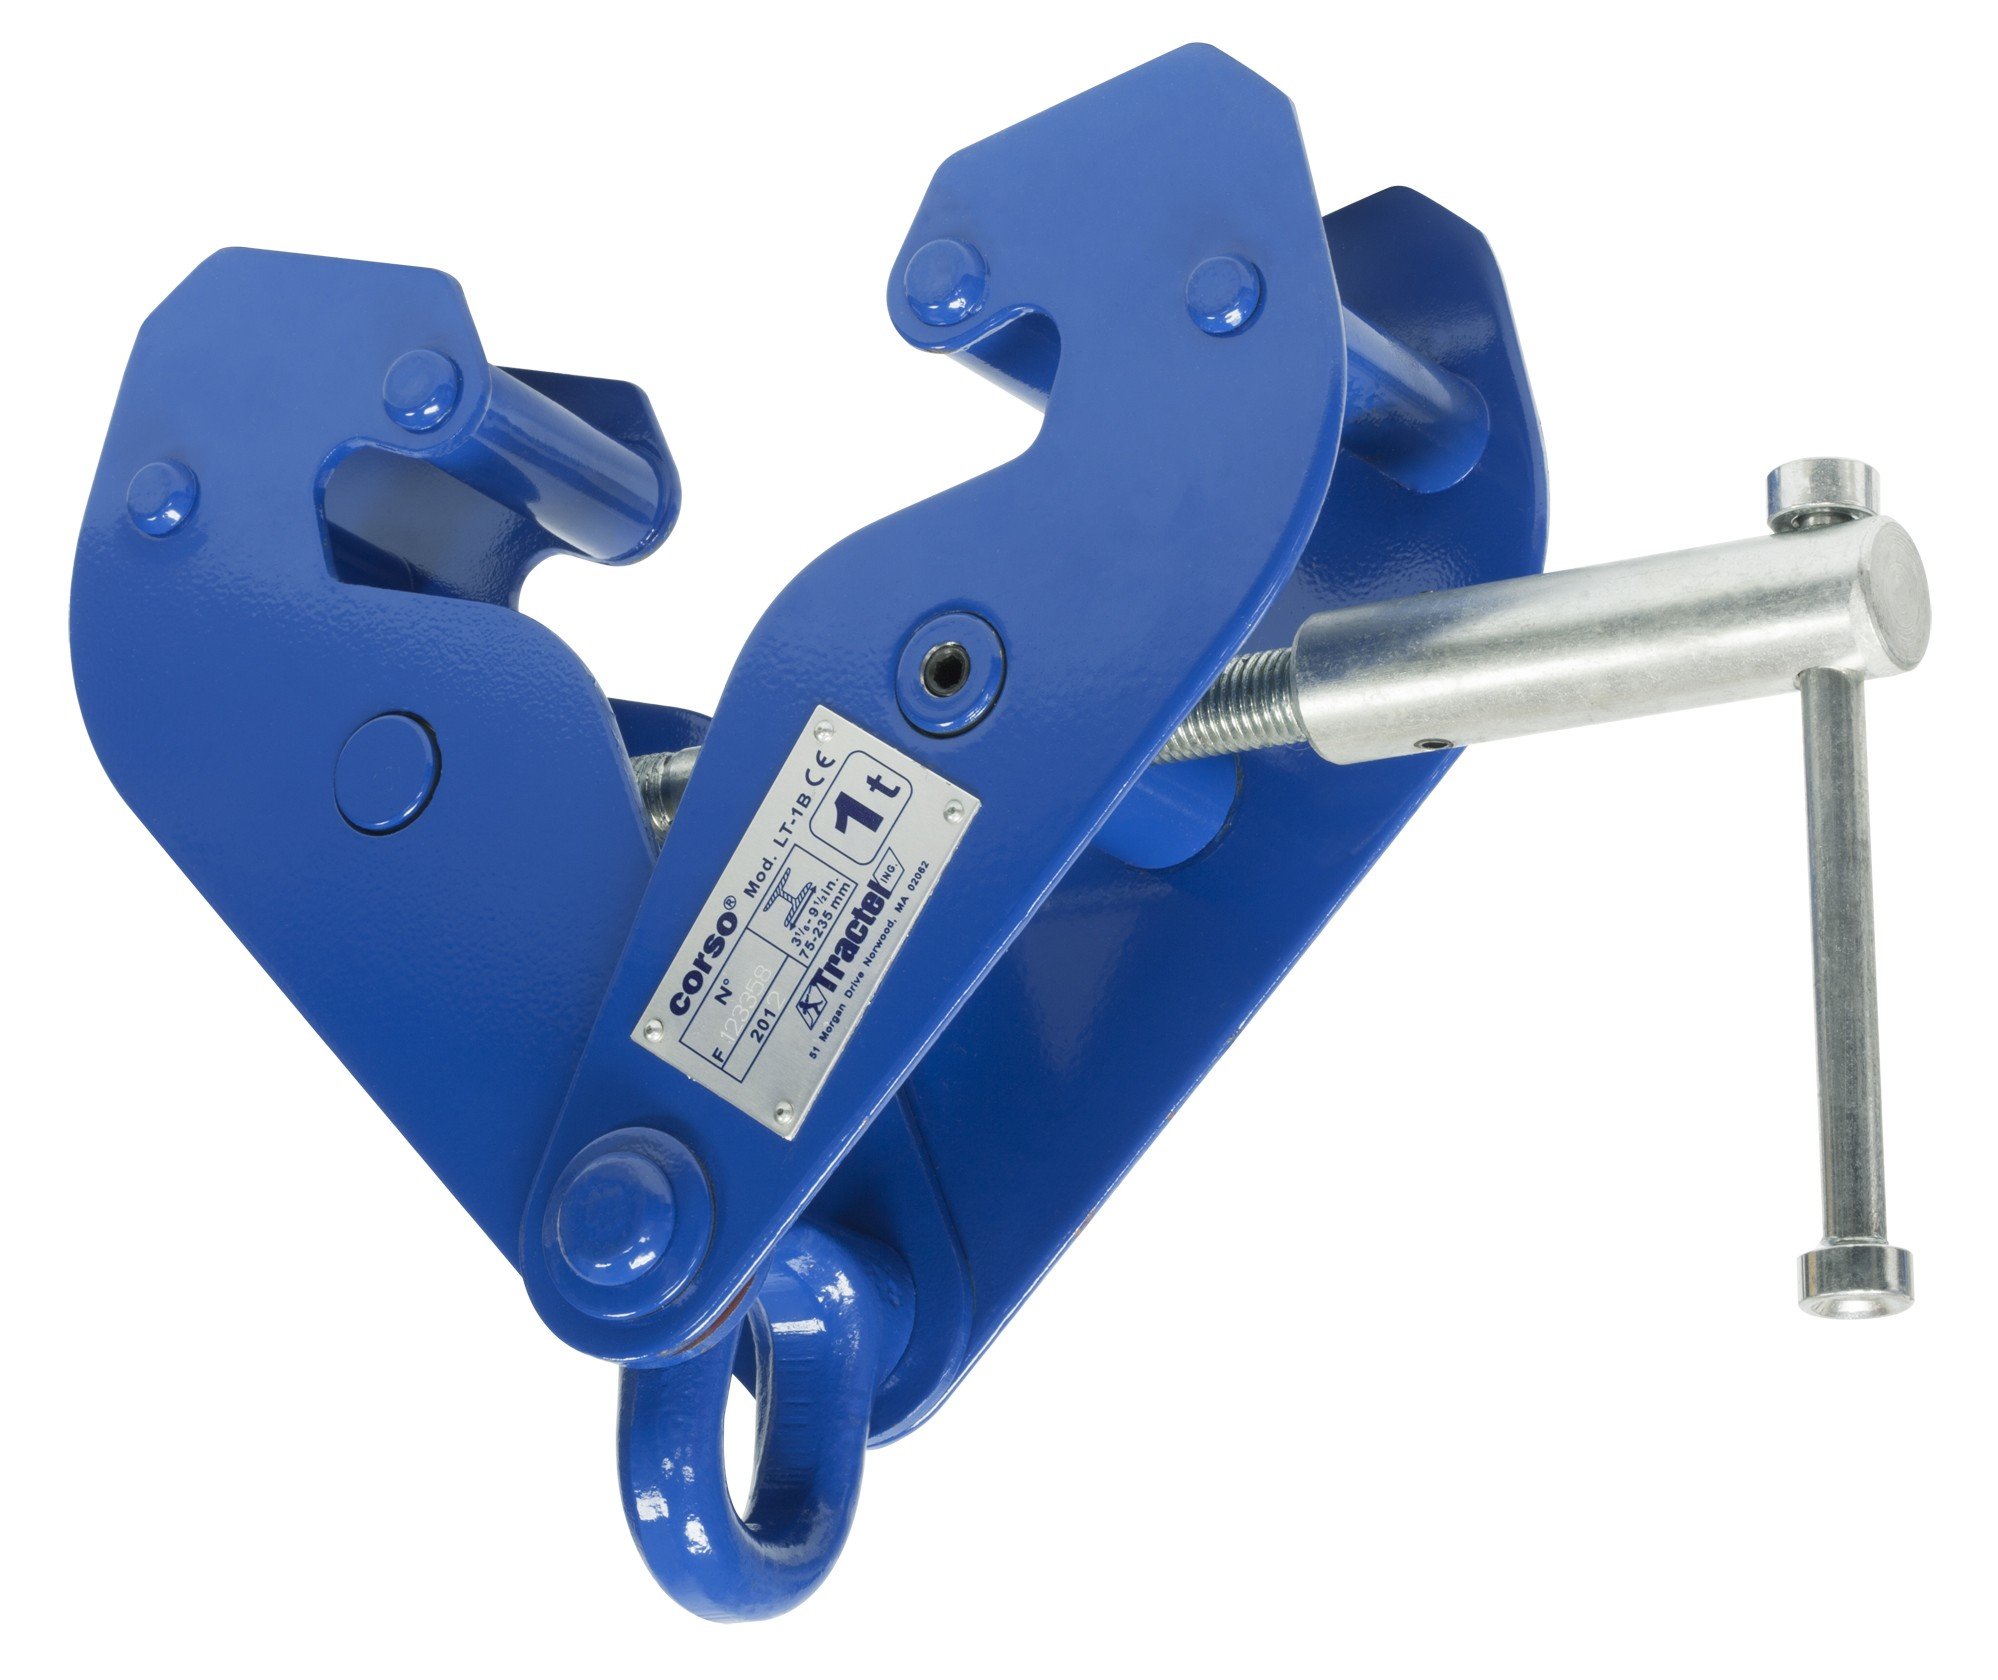 TRACTEL BEAM CLAMP: 10 TON BEAM CLAMP w/LIFTING EYE